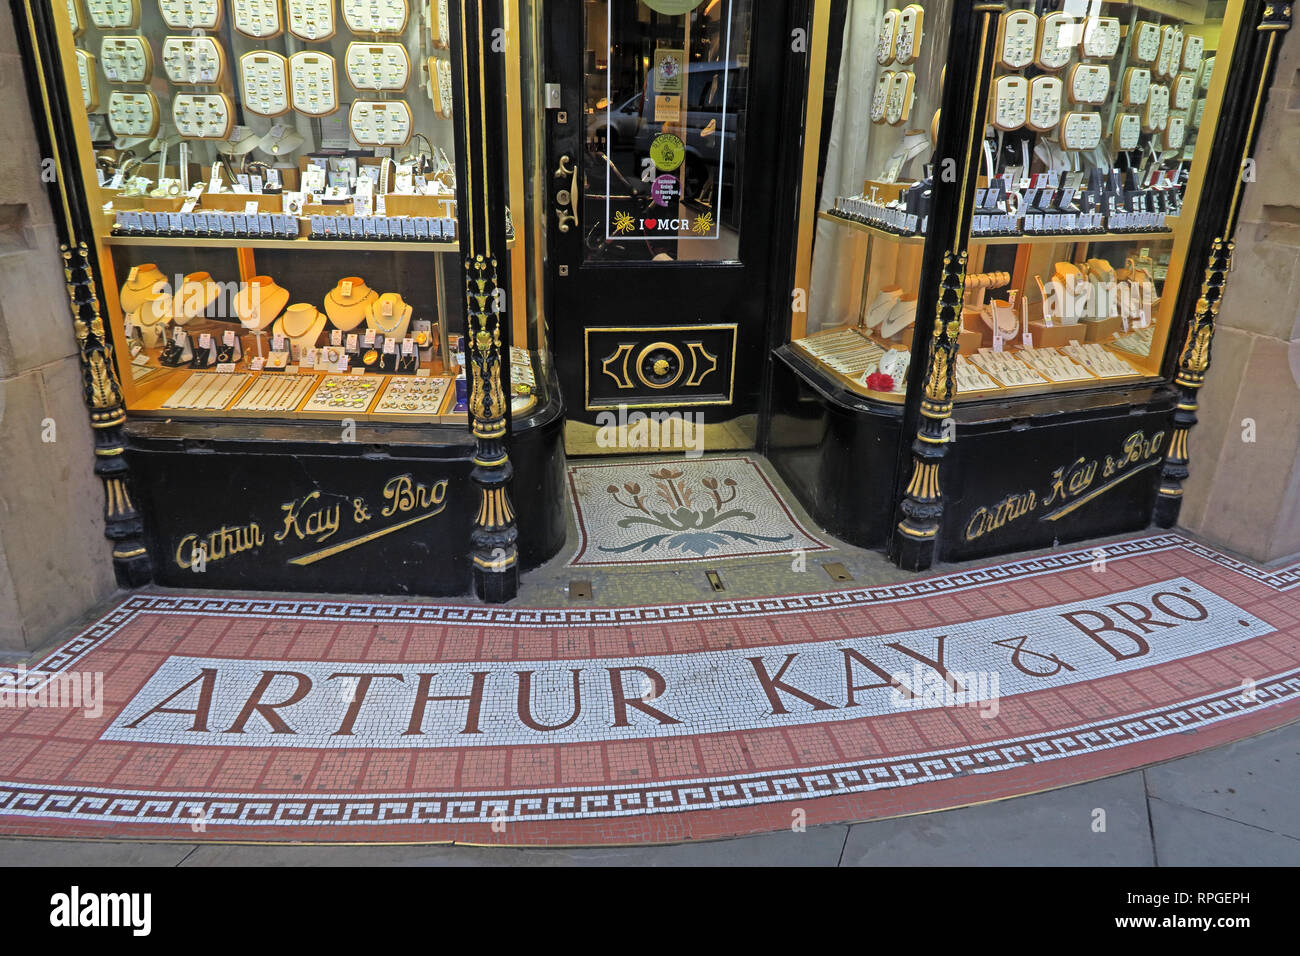 GoTonySmith,HotpixUK,@HotpixUK,Manchester,England,UK,GB,North West England,city centre,Jeweler,Jeweller,St Anns Square,St Annes Square,shop,store,sign,As advertised,gold,black,mosaic,door,doorway,entrance,external,outside,window,shop window,historic,& Brother,brother,LMG,Jewelry,Jewellery,jewellery chain,jewellery,Burns Jewellers Group Ltd,Burns,financial,difficulties